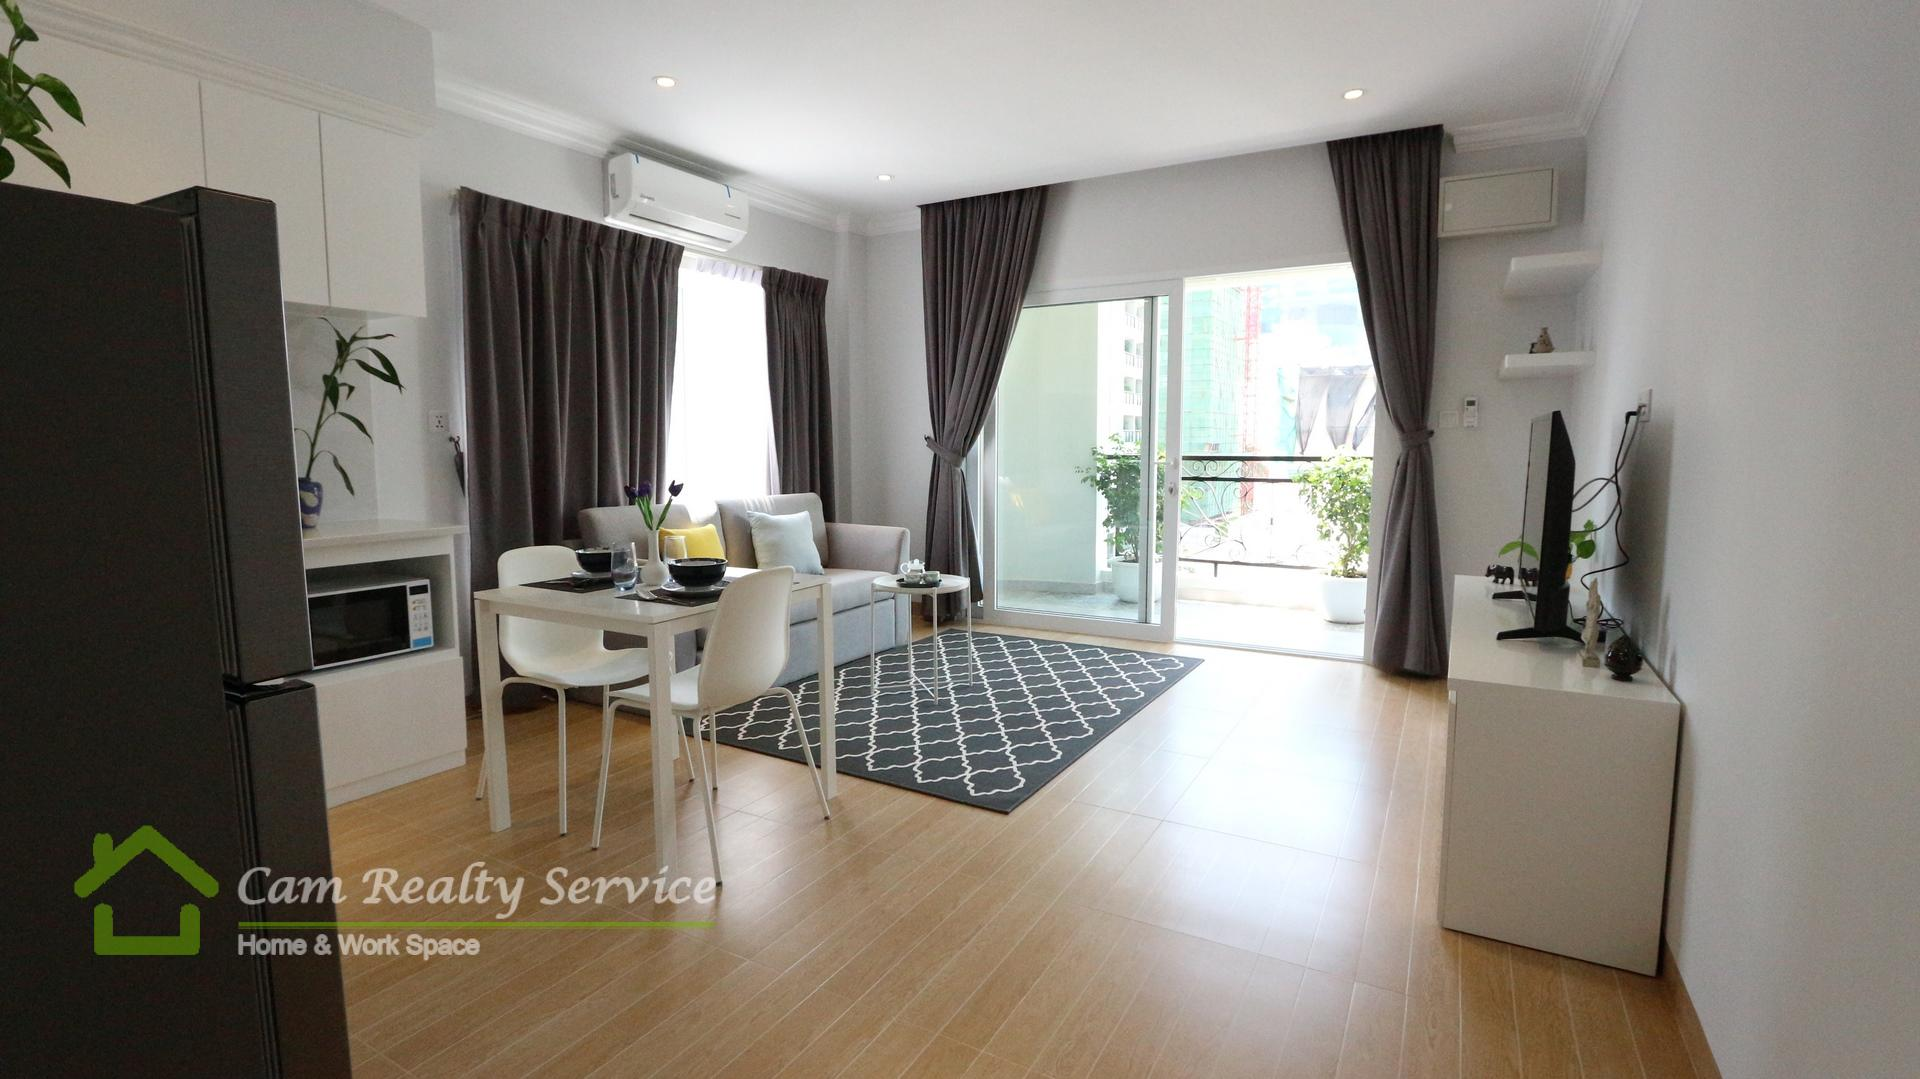 BKK1 area| Modern style 1 bedroom serviced apartment for rent| 700$/month up| Gym